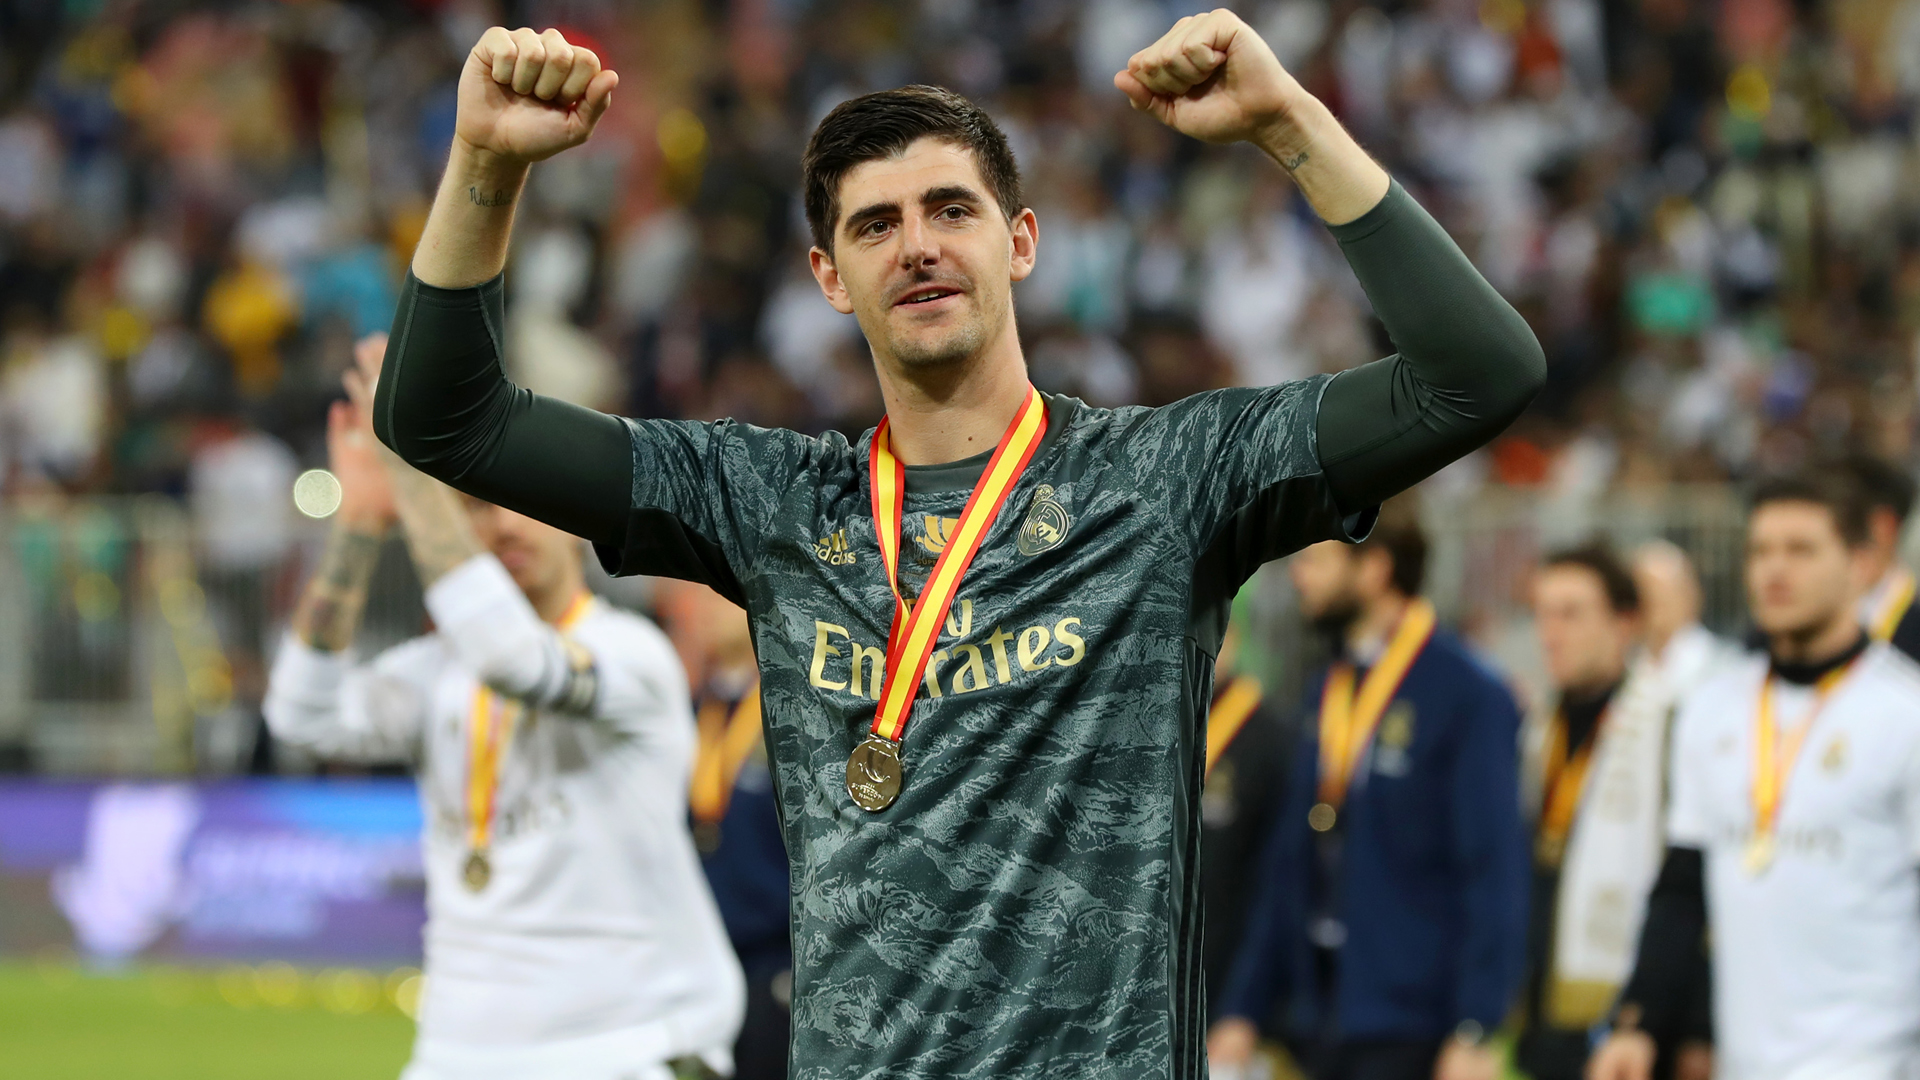 'Courtois is the best in the world' - Real president Perez praises goalkeeper after Super Cup win